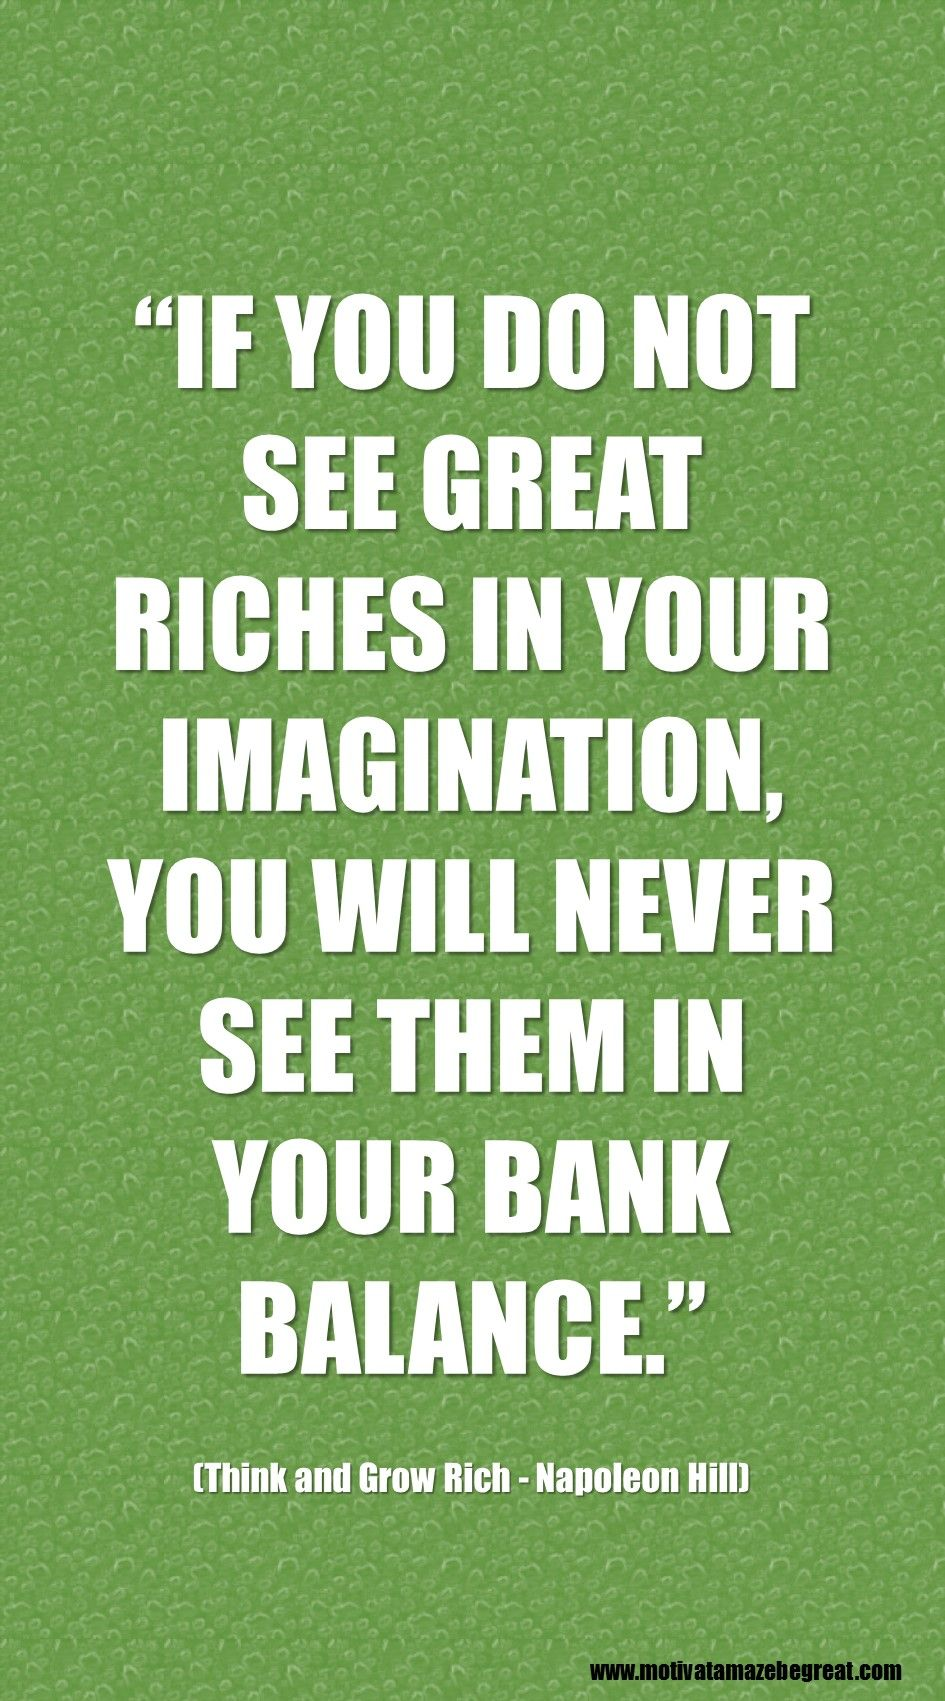 Think And Grow Rich Quotes Napoleon Hill Best Inspirational Quotes From Think And Grow Rich